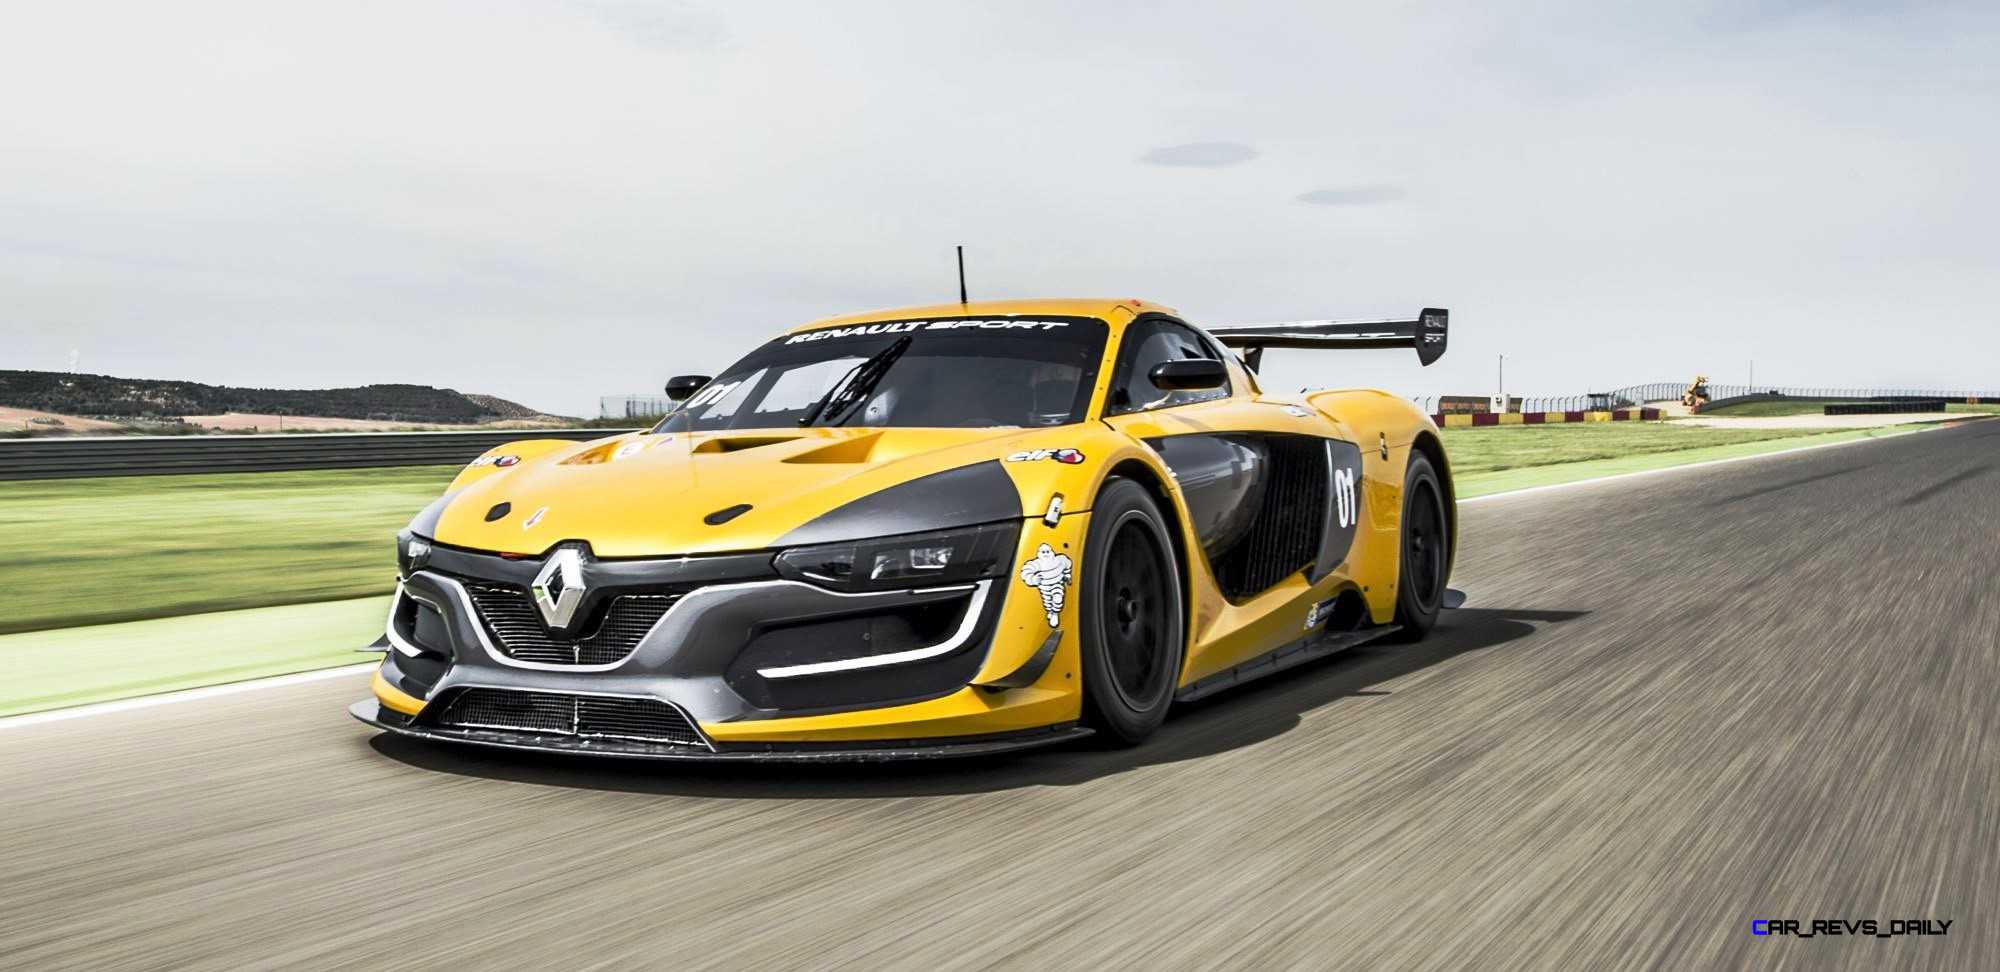 2018 Renault Sport RS 01 photo - 3